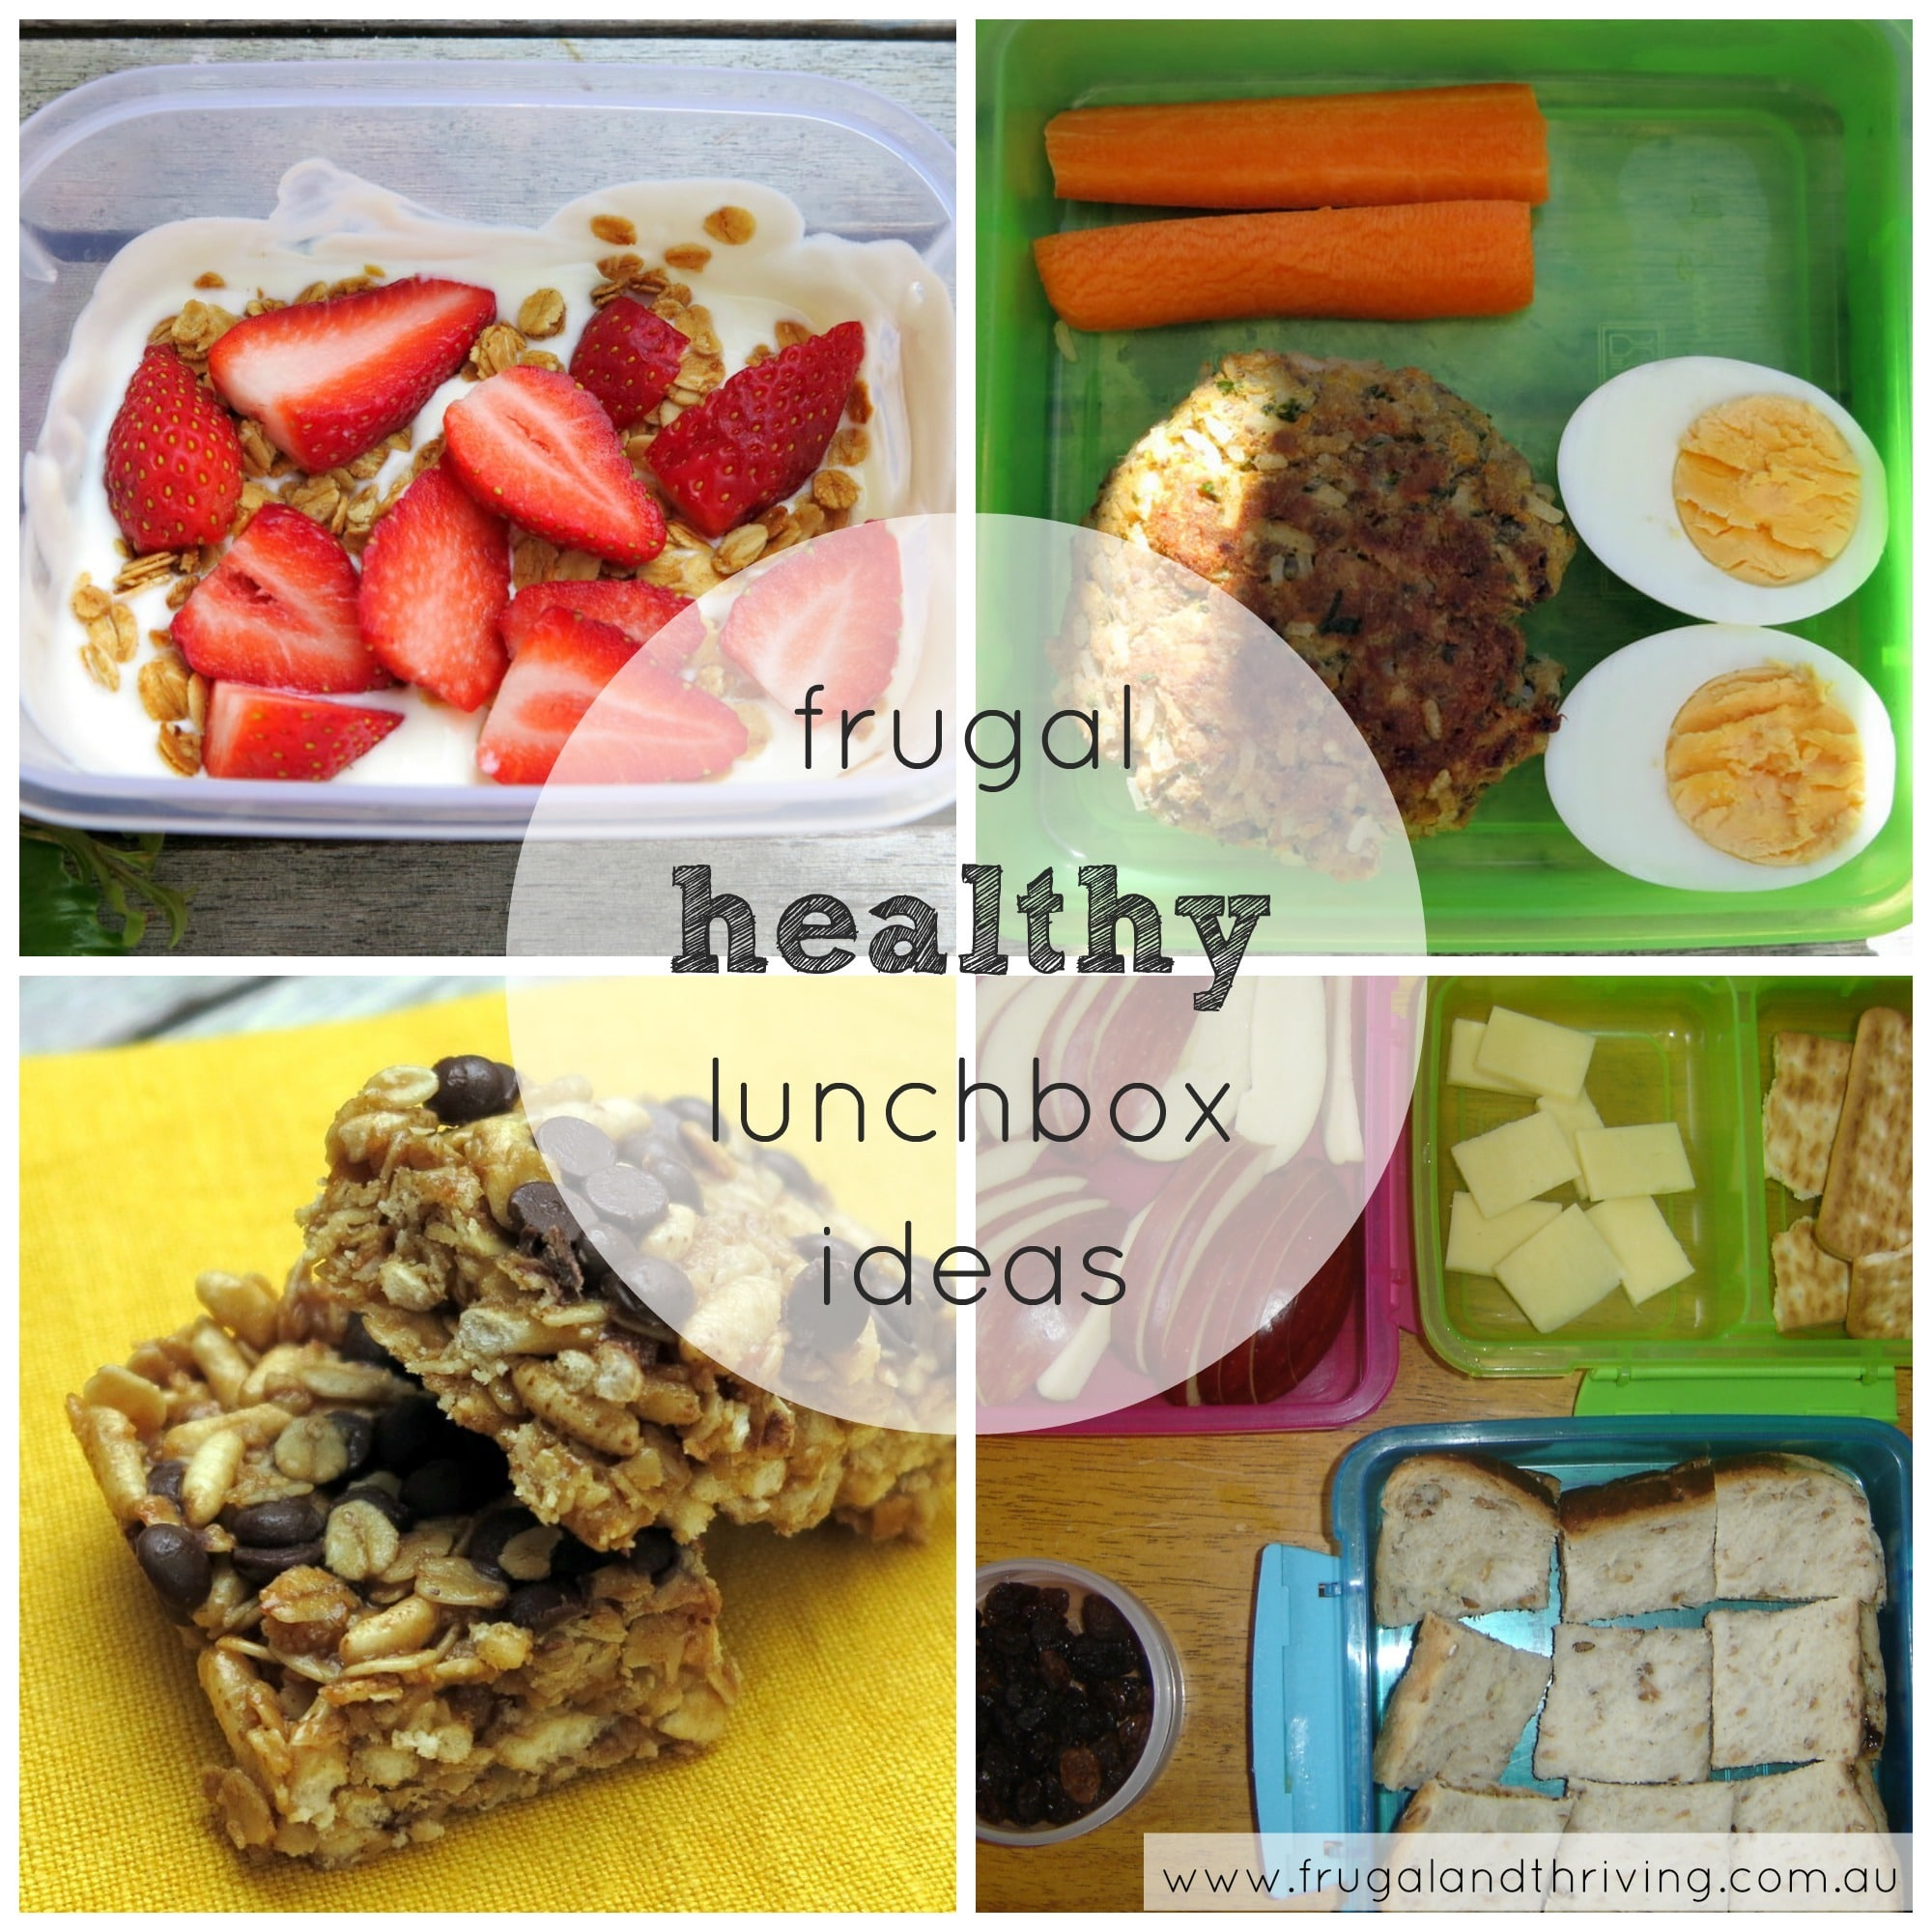 frugal and healthy lunchbox ideas